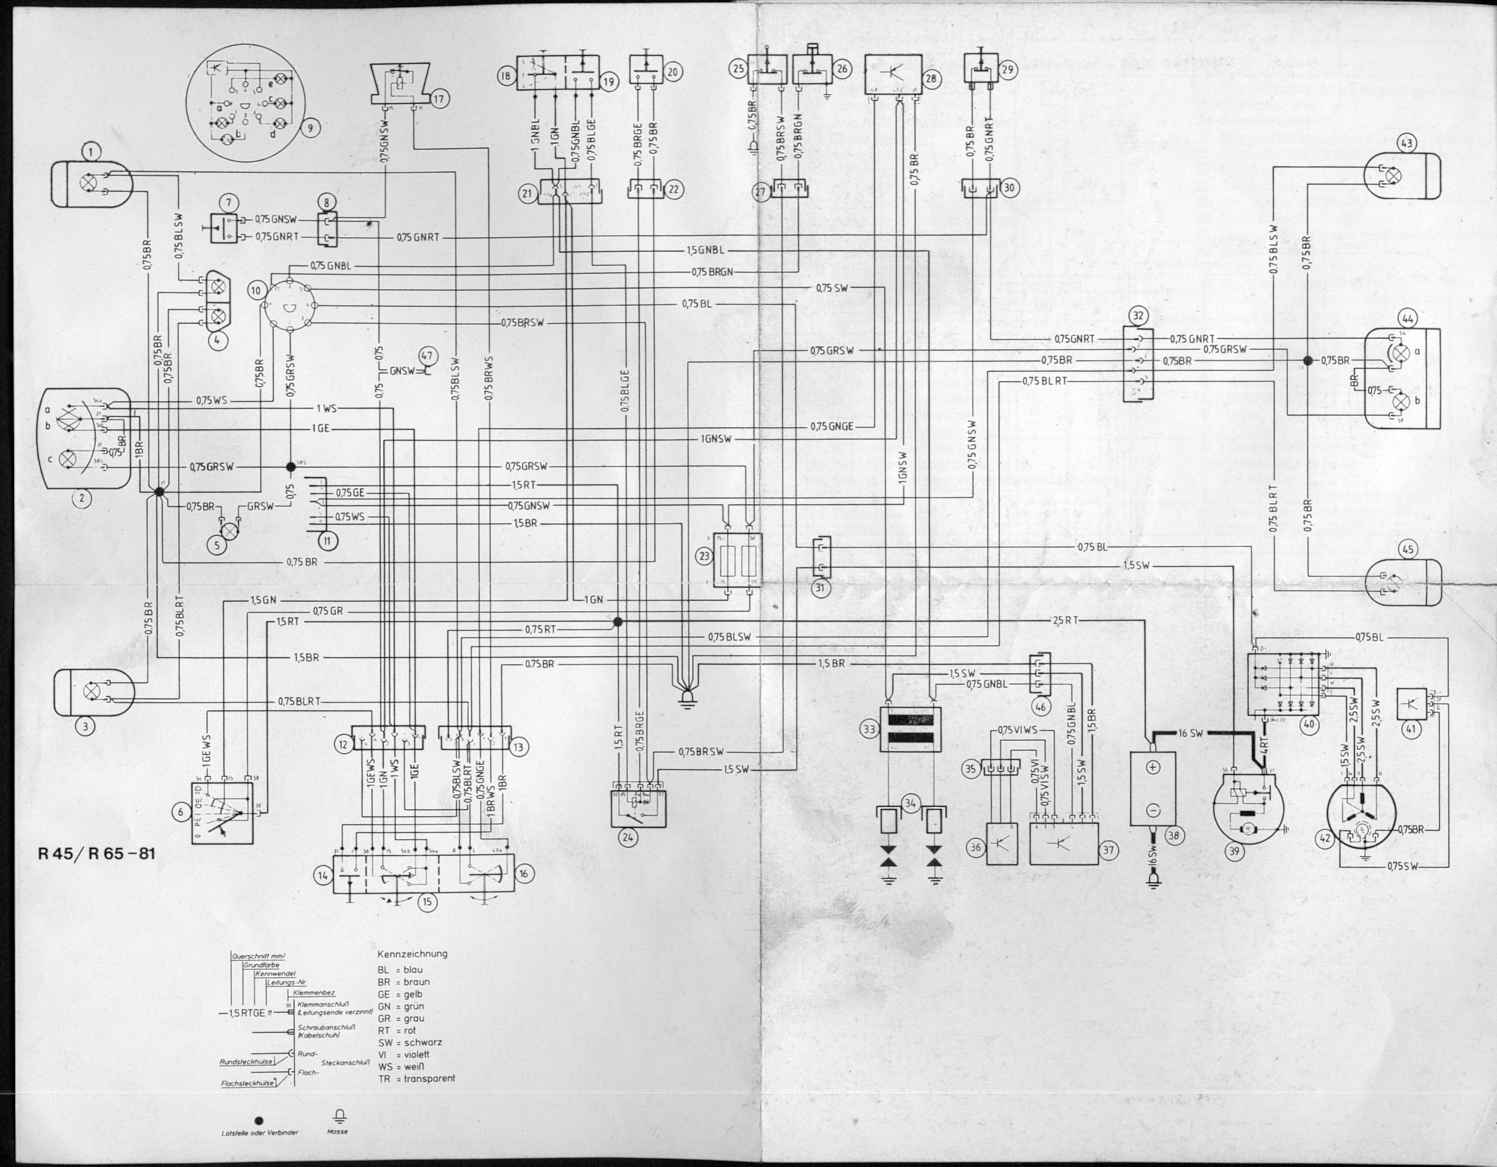 Wiring Diagram Bmw R65 : Motorcycle wiring diagram bmw r auto